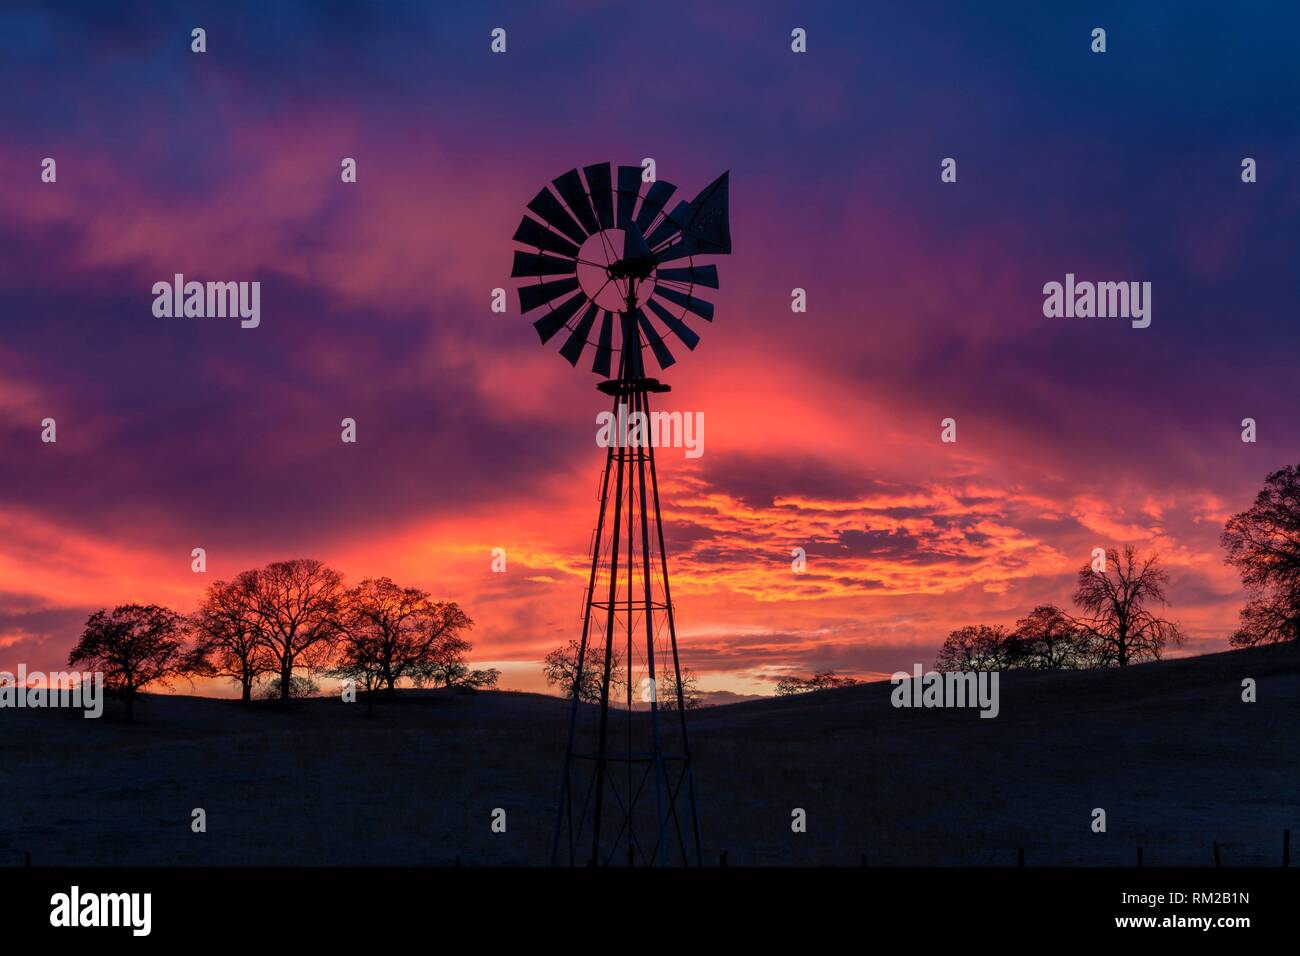 Sunset storm clouds and colors form a backdrop for a foothill farm´s windmill. Sierra Nevada Foothills, California, USA - Stock Image